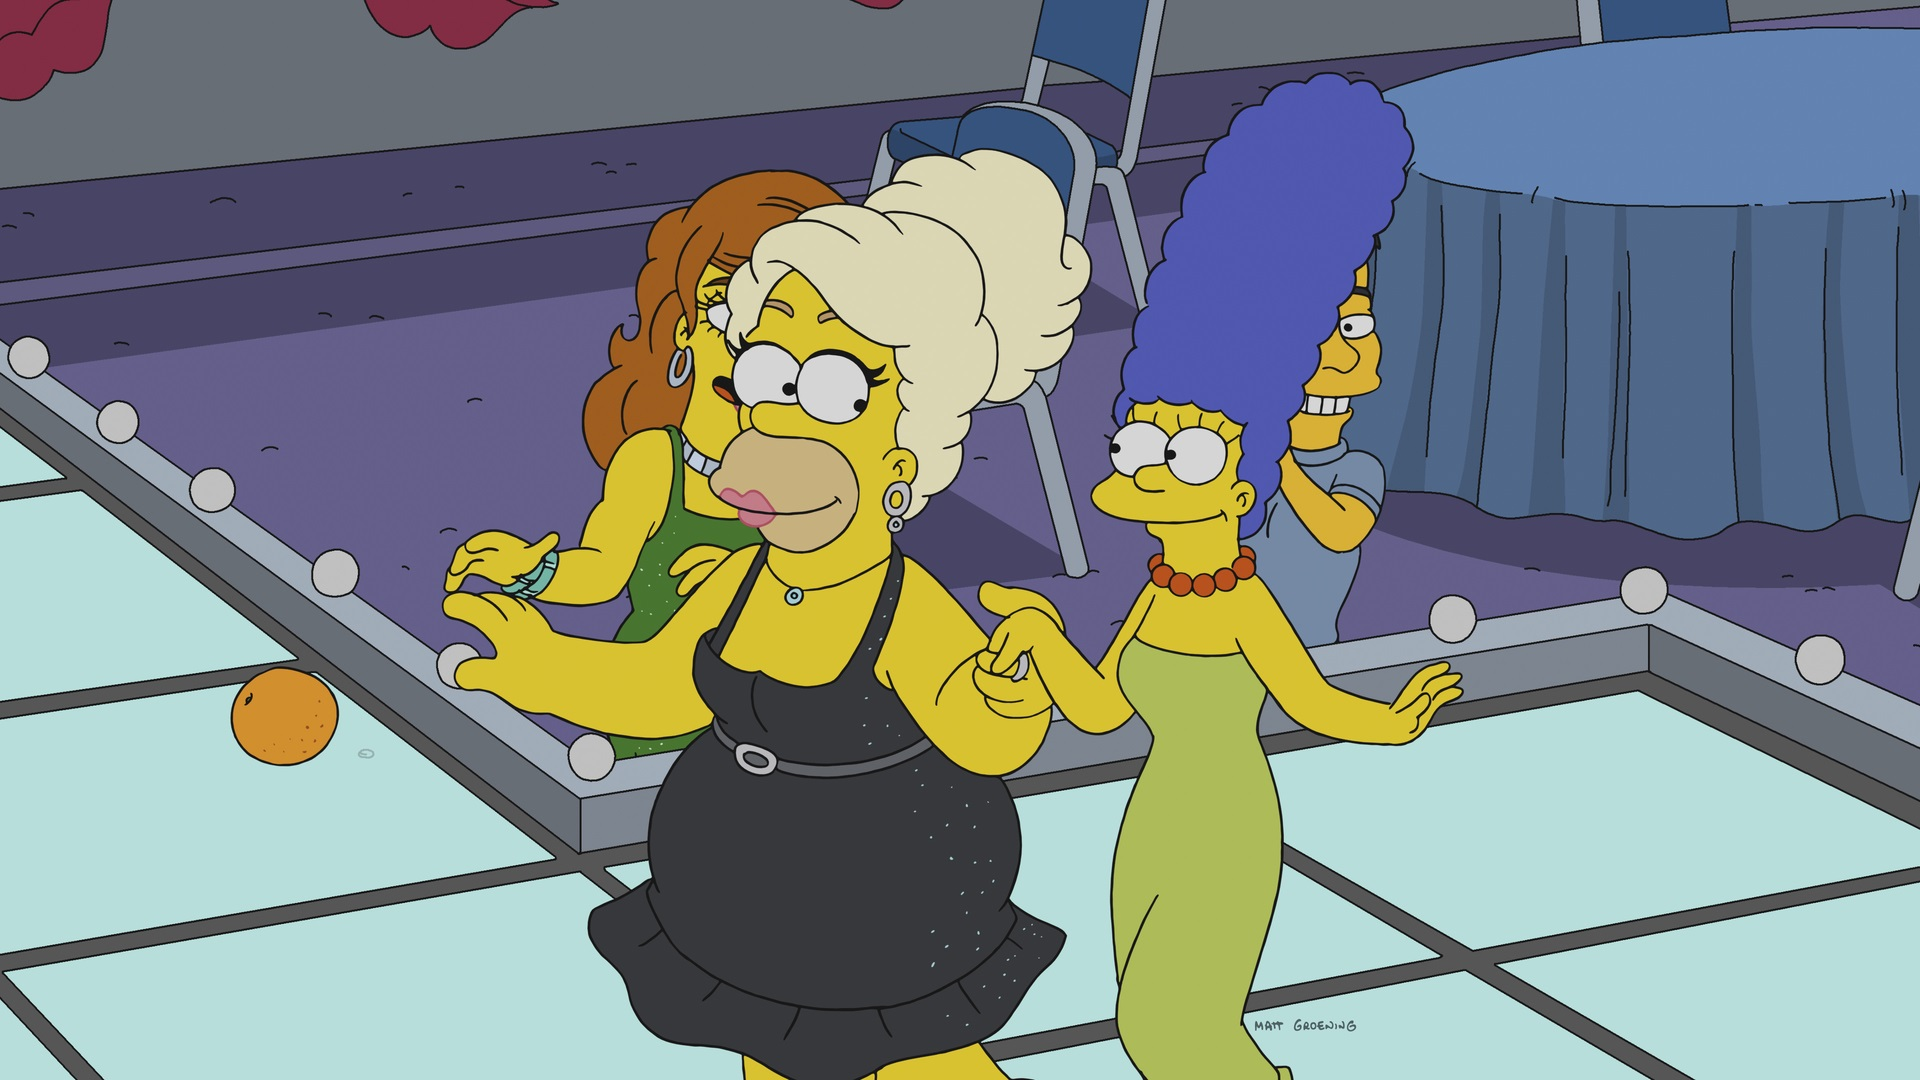 Homer Simpson dresses as a drag queen in a new episode of The Simpsons